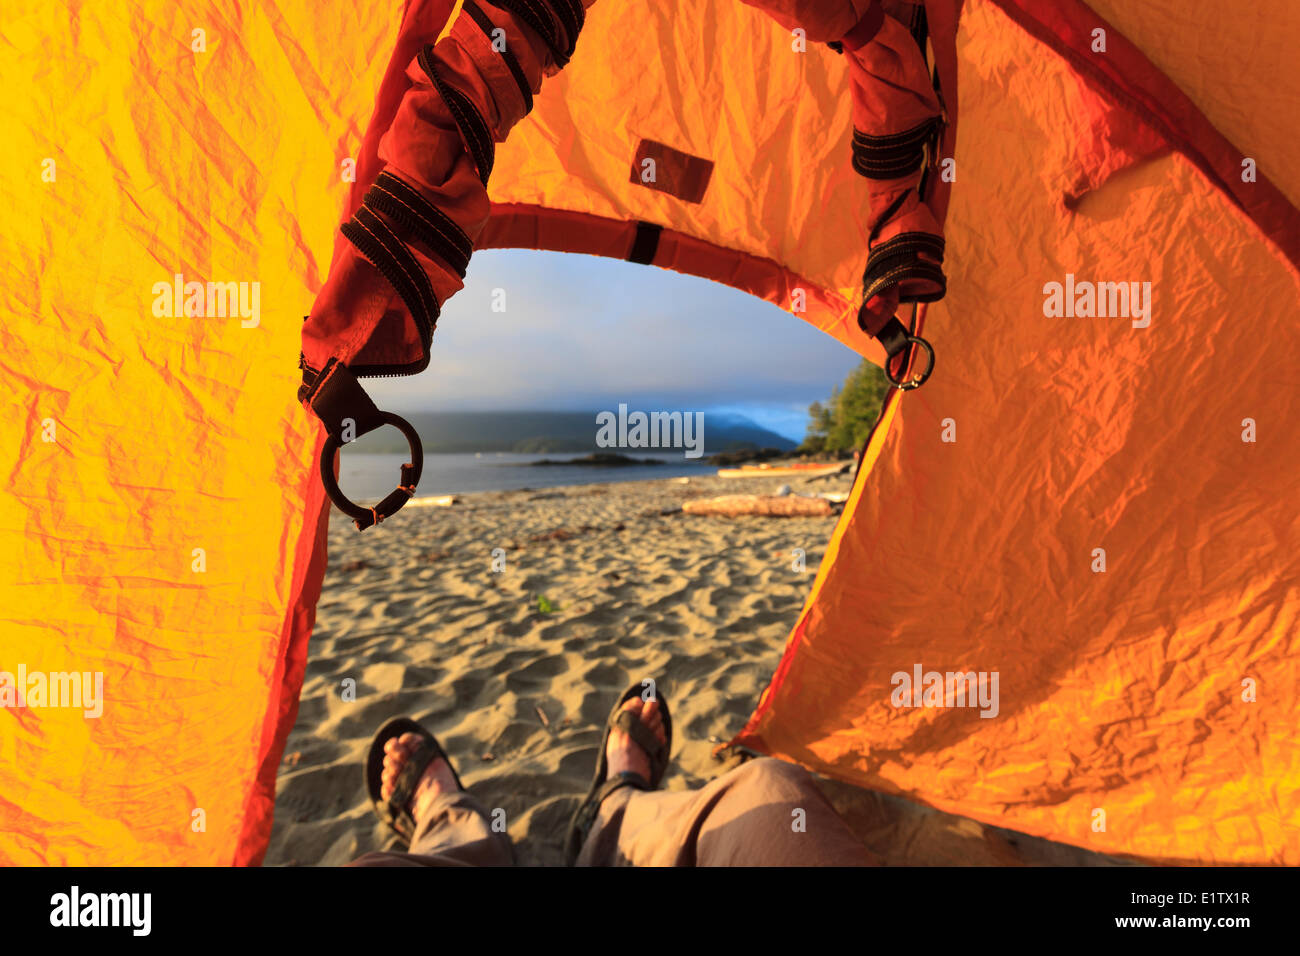 The view looking out from inside a tent on Vargas Island Clayoquot Sound British Columbia, Canada. - Stock Image